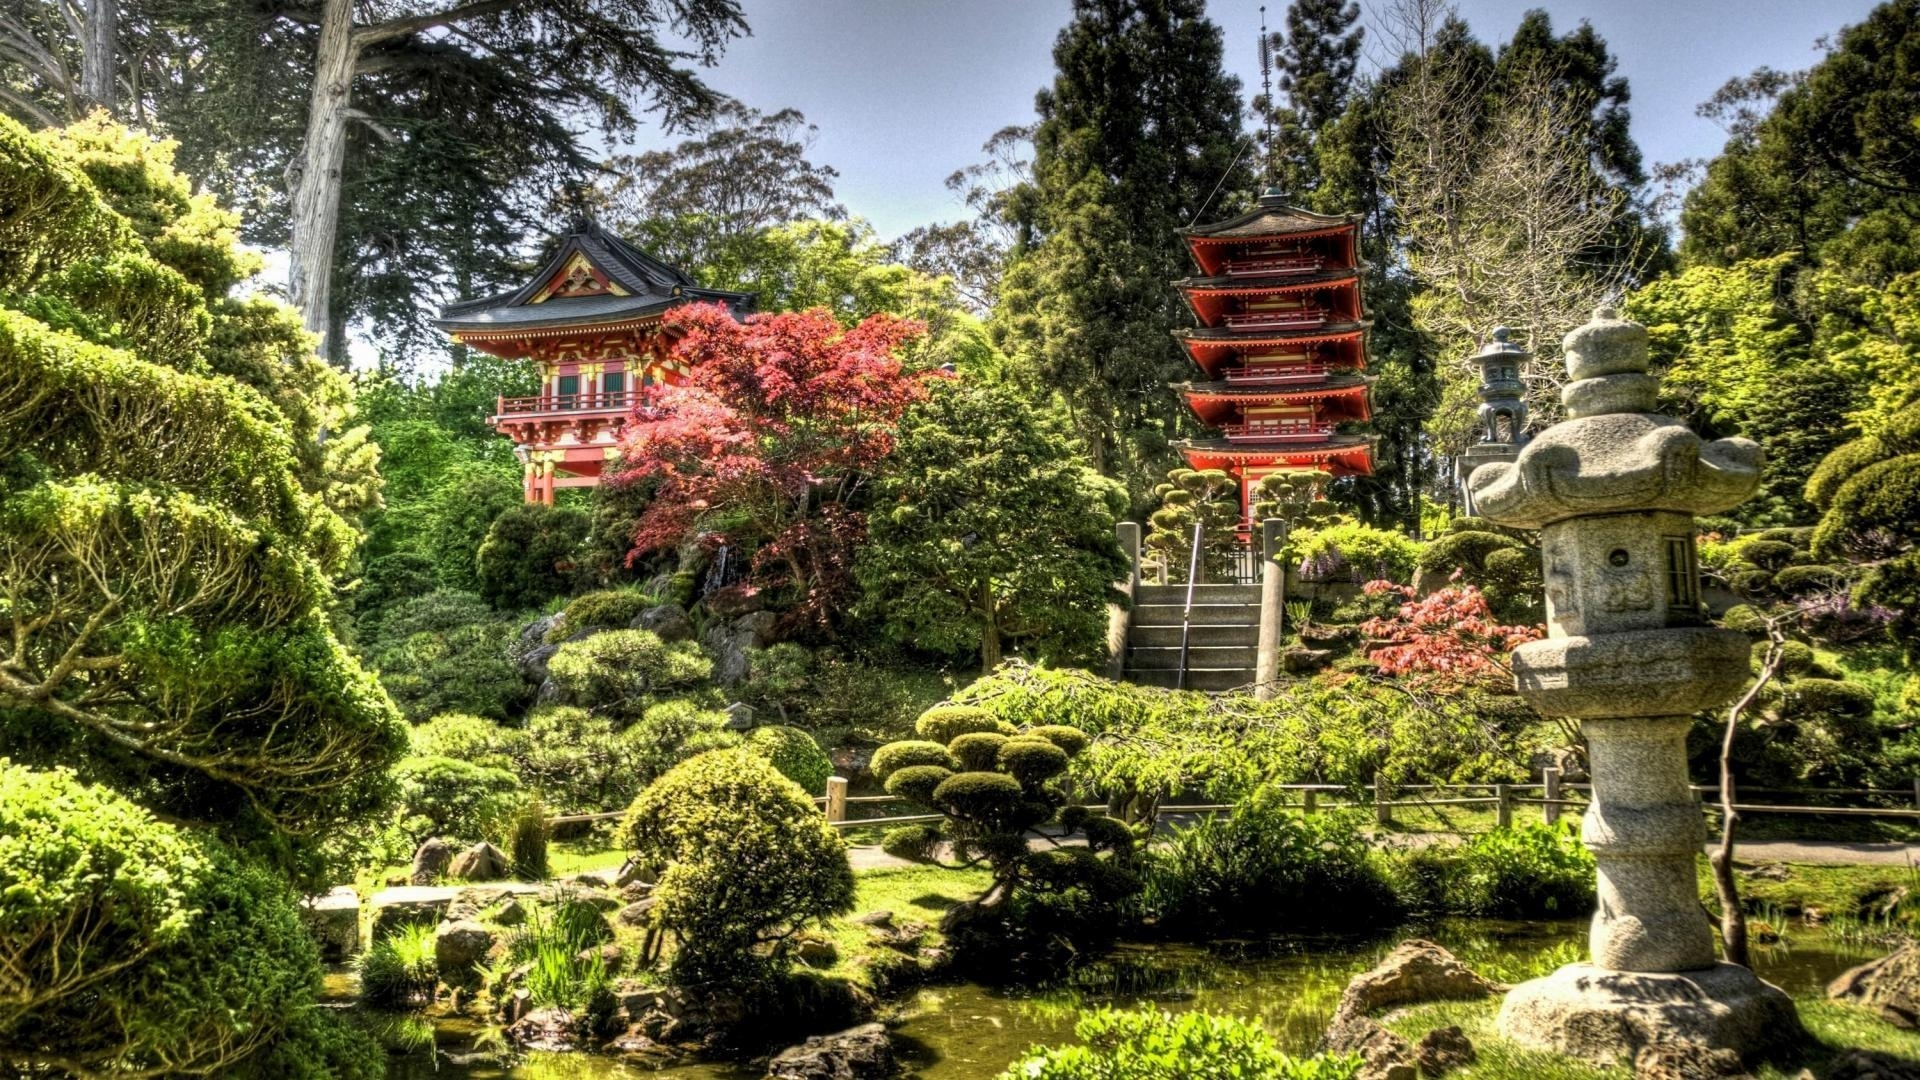 free 1920x1080 japanese tea garden wallpapers full hd 1080p backgrounds